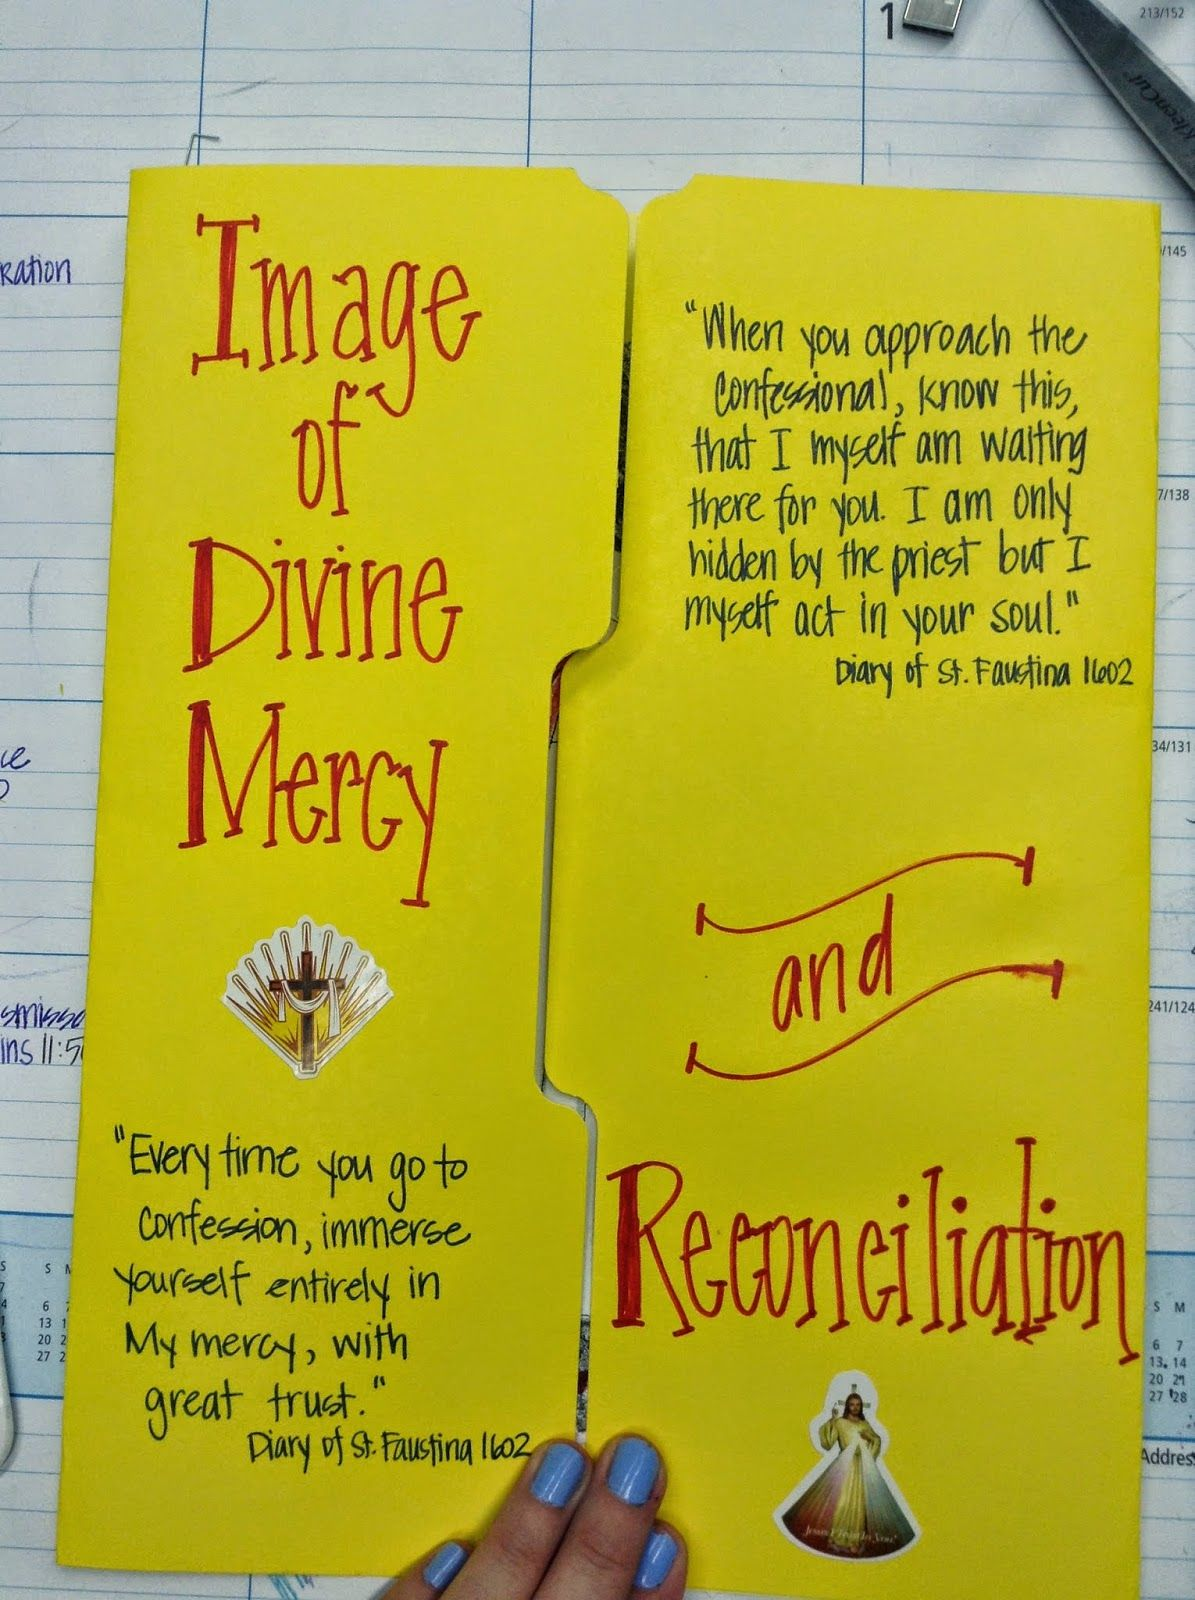 Image Of Divine Mercy And The Sacrament Of Reconciliation Lapbook Notebook Ideas From